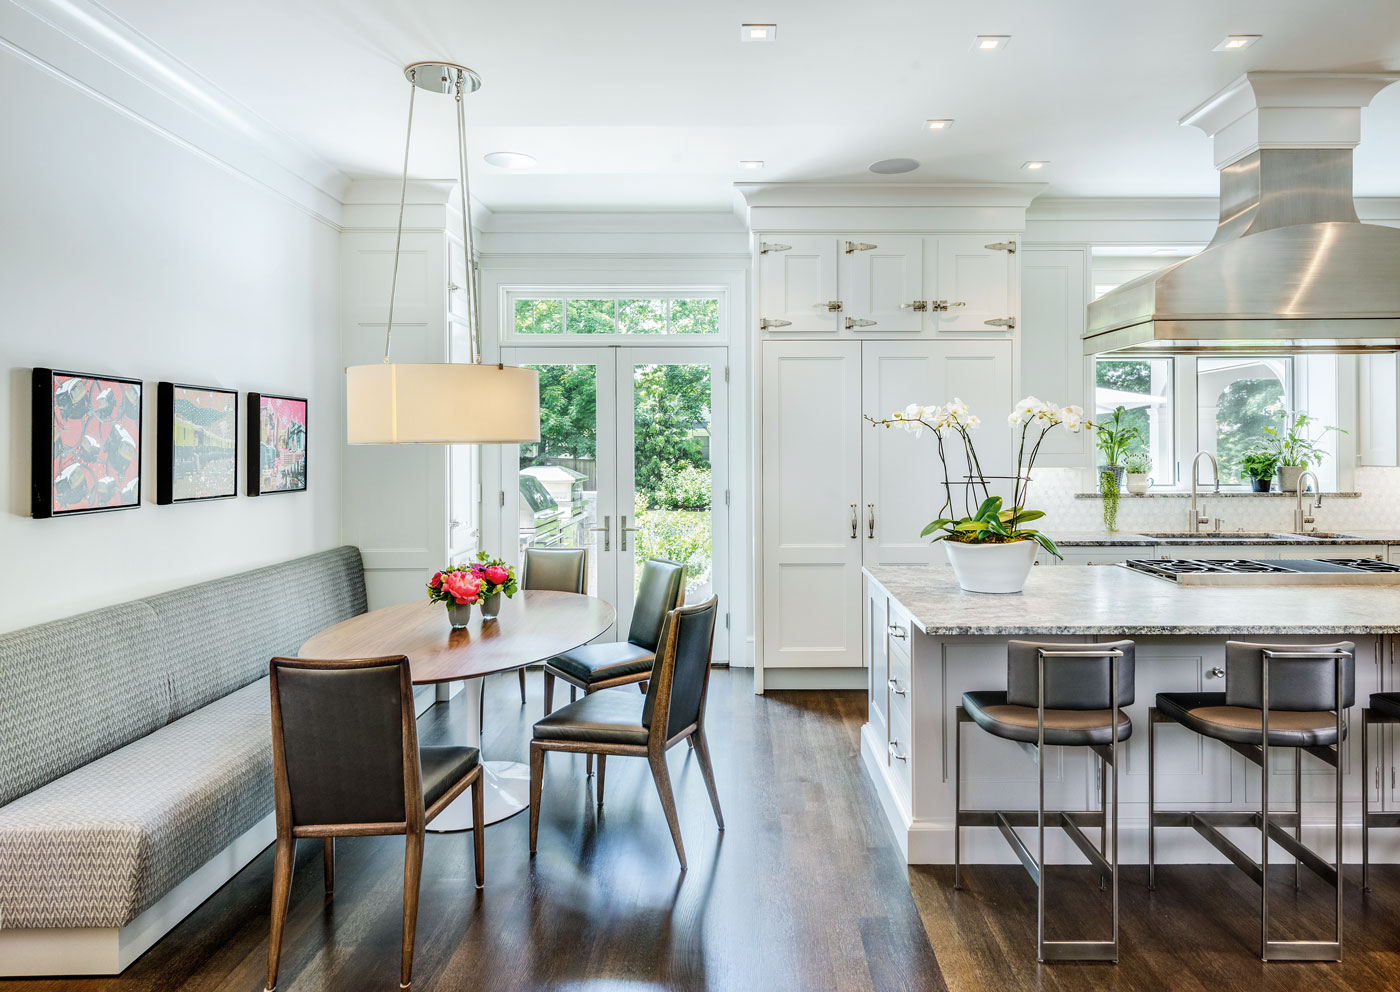 Christopher Peacock kitchen in a high-end New England home designed by Morehouse MacDonald and Associates and built by Sanford Custom Builders, Inc.